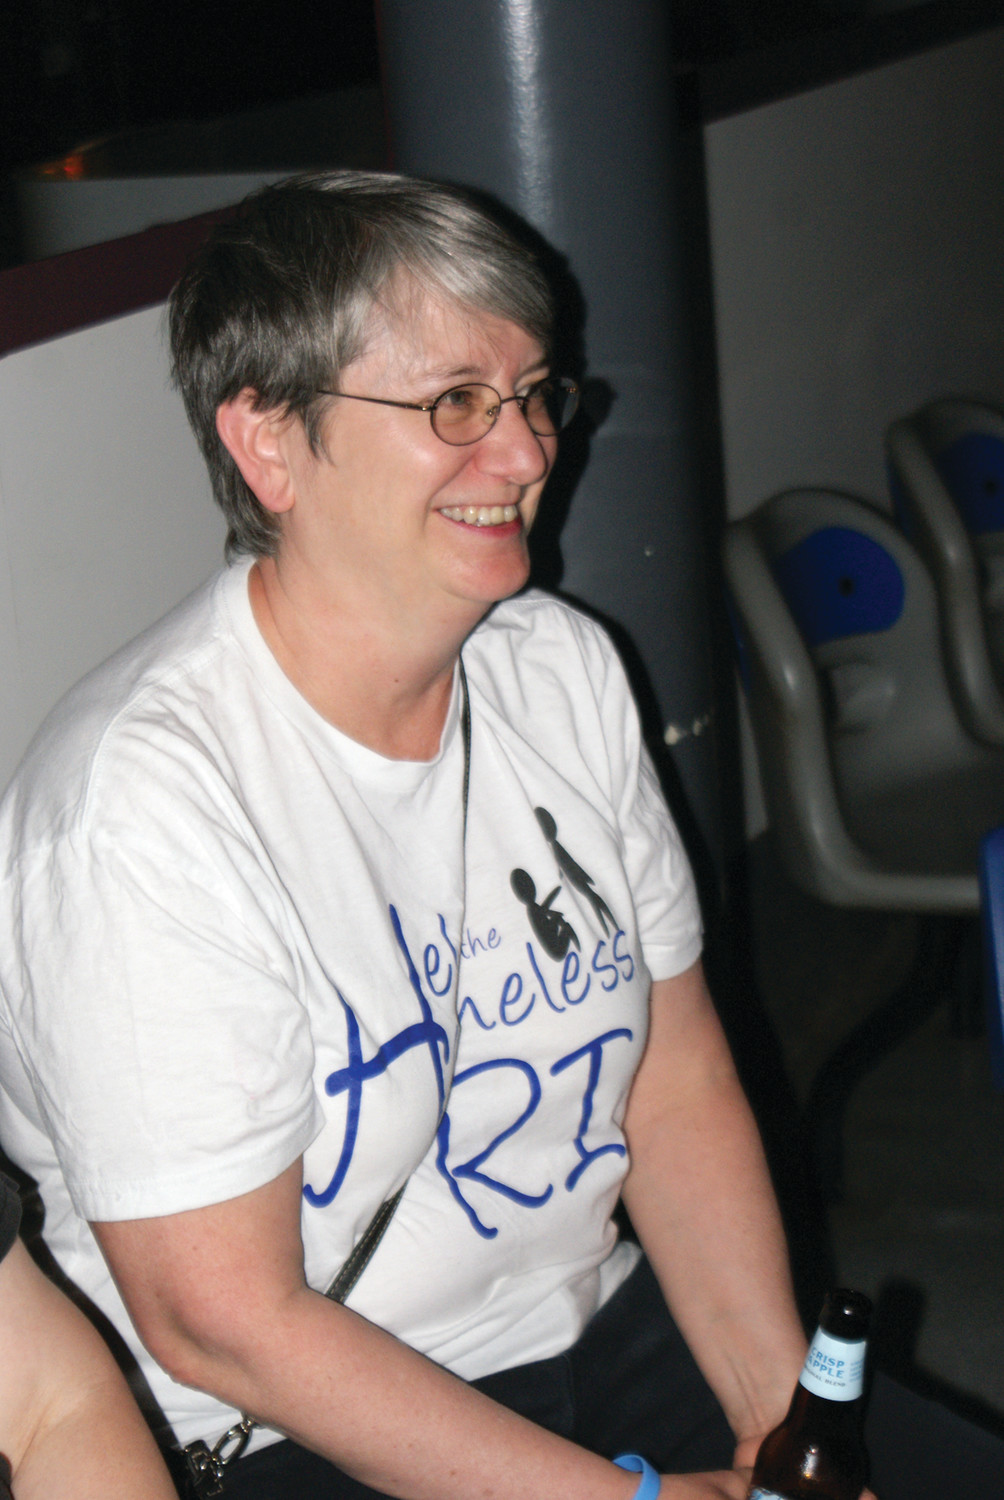 A VERY HAPPY DIRECTOR: Andrea Smith, the Director of Help the Homeless RI, smiles as bowlers raise funds to help the impoverished throughout RI at Town Hall Lanes in Johnston on June 16.